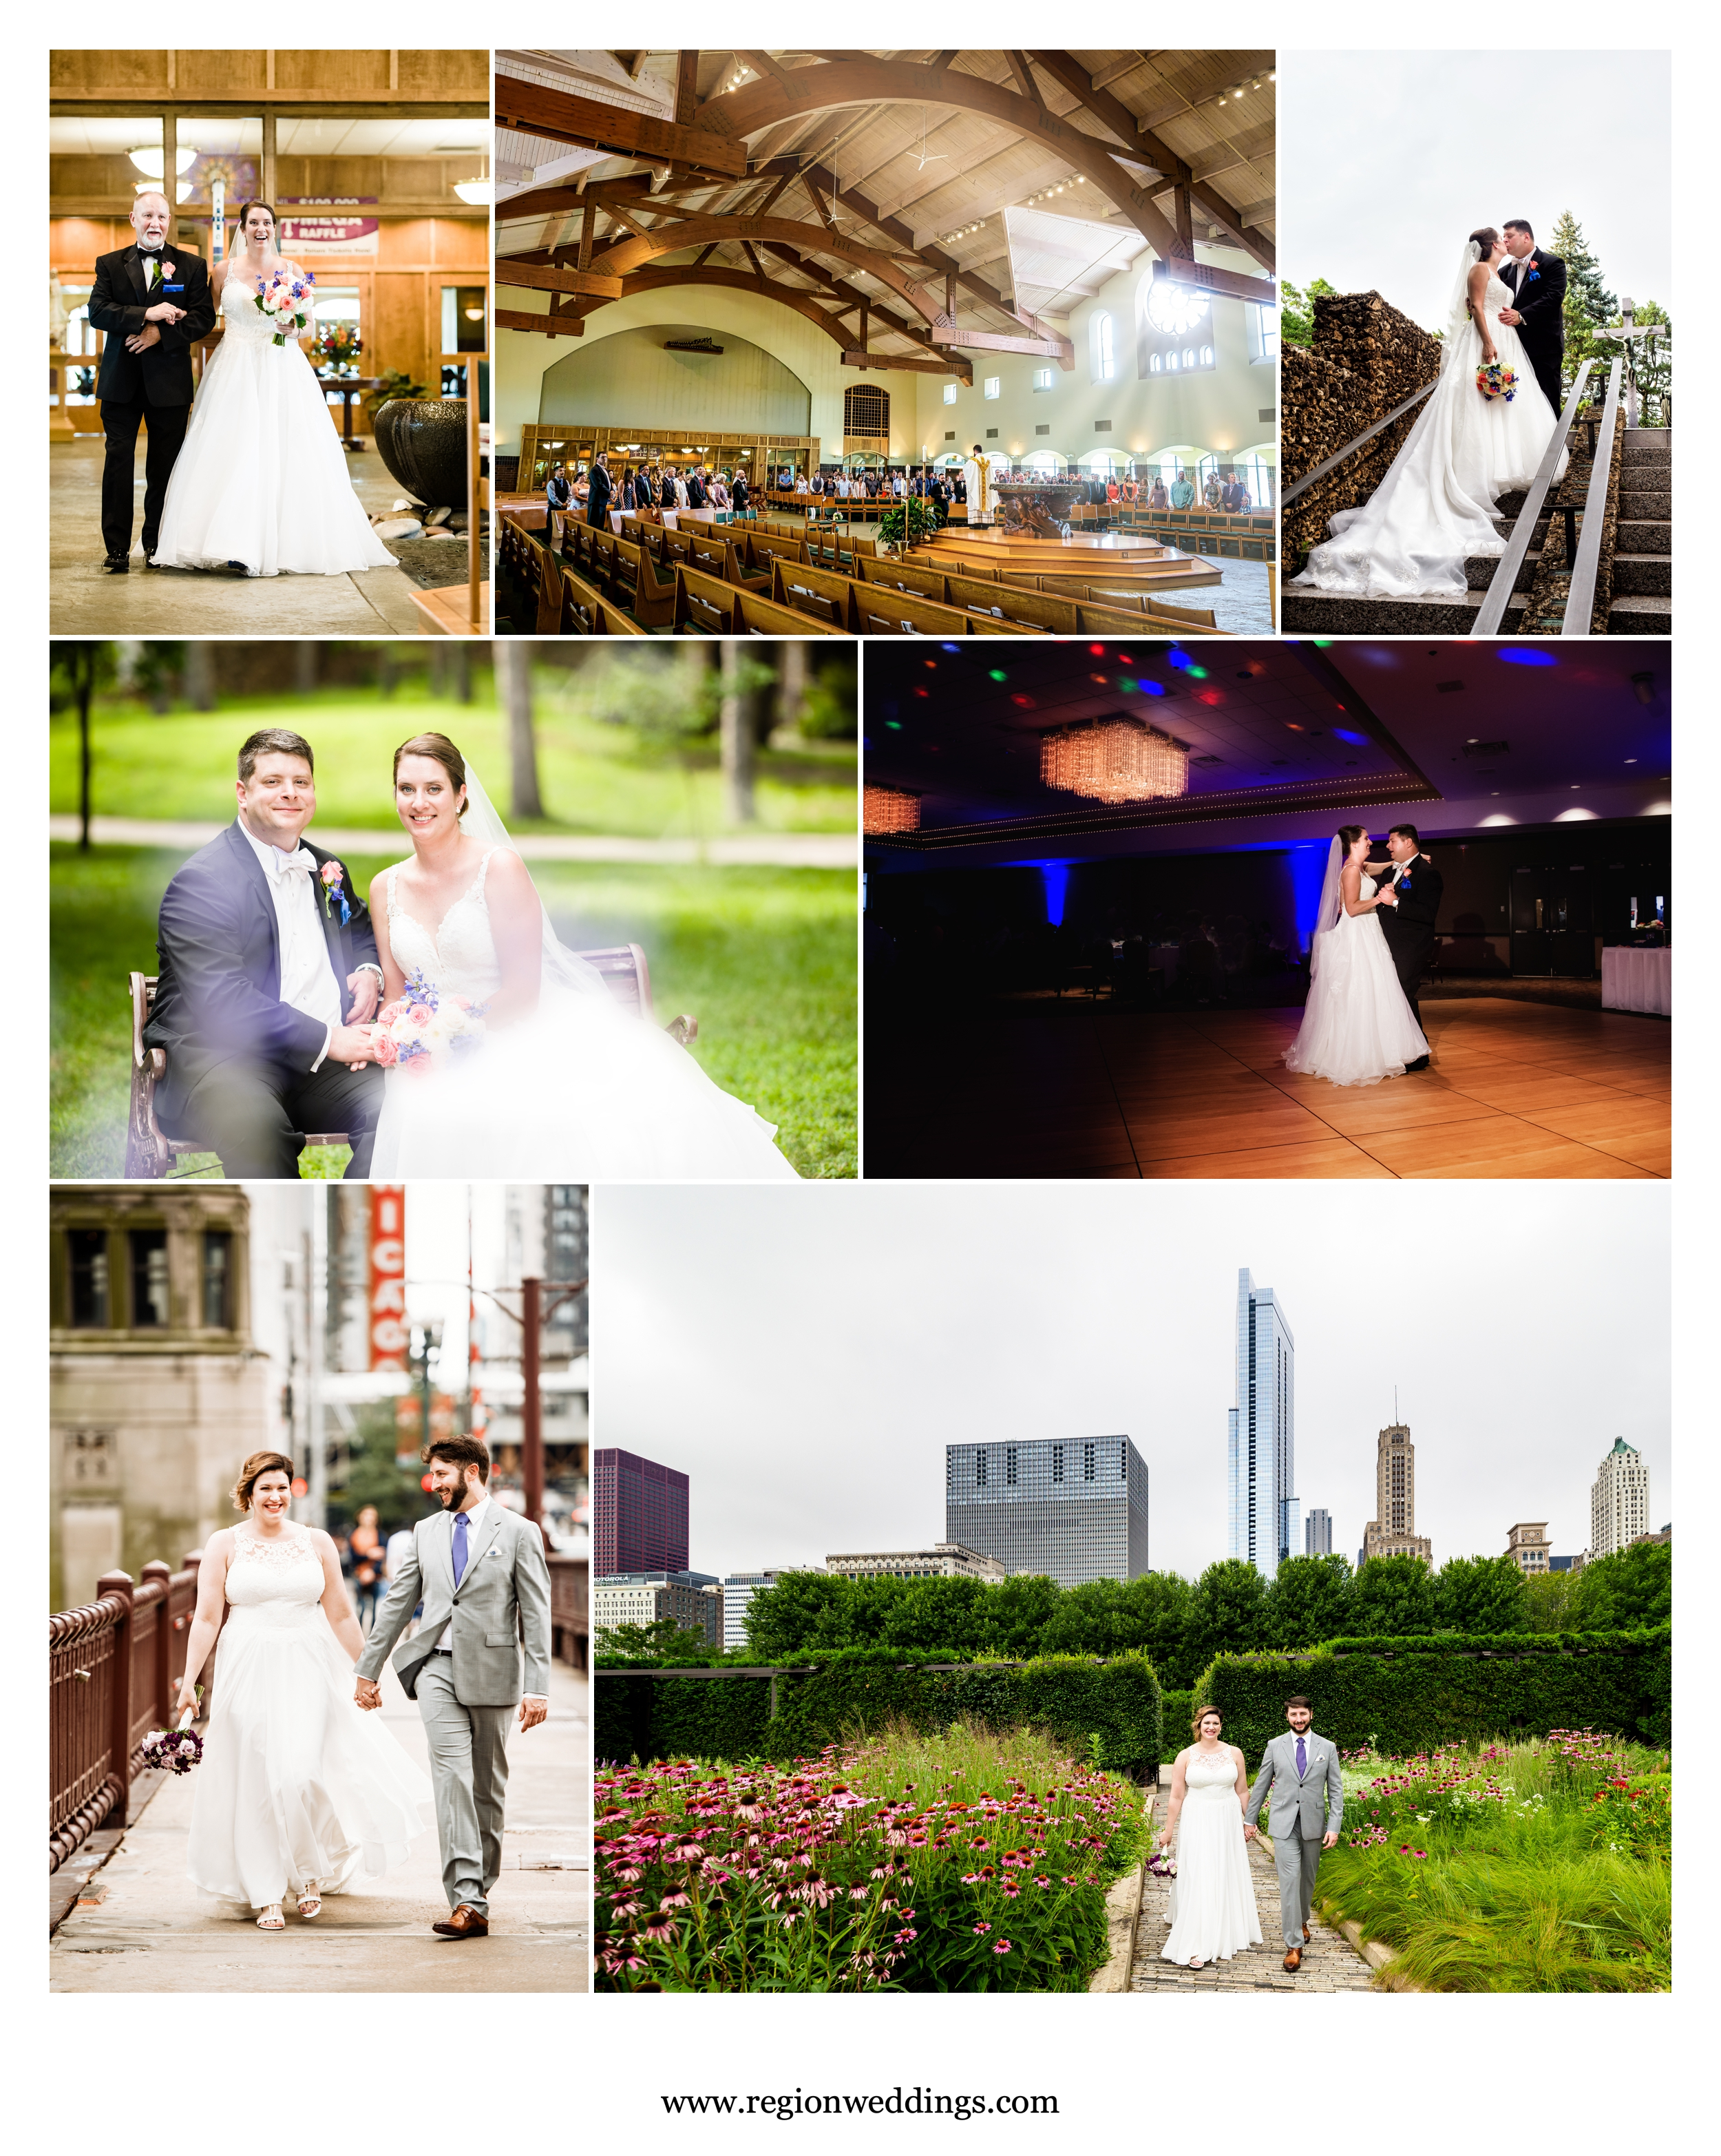 July weddings in Chicago and Schererville, Indiana.